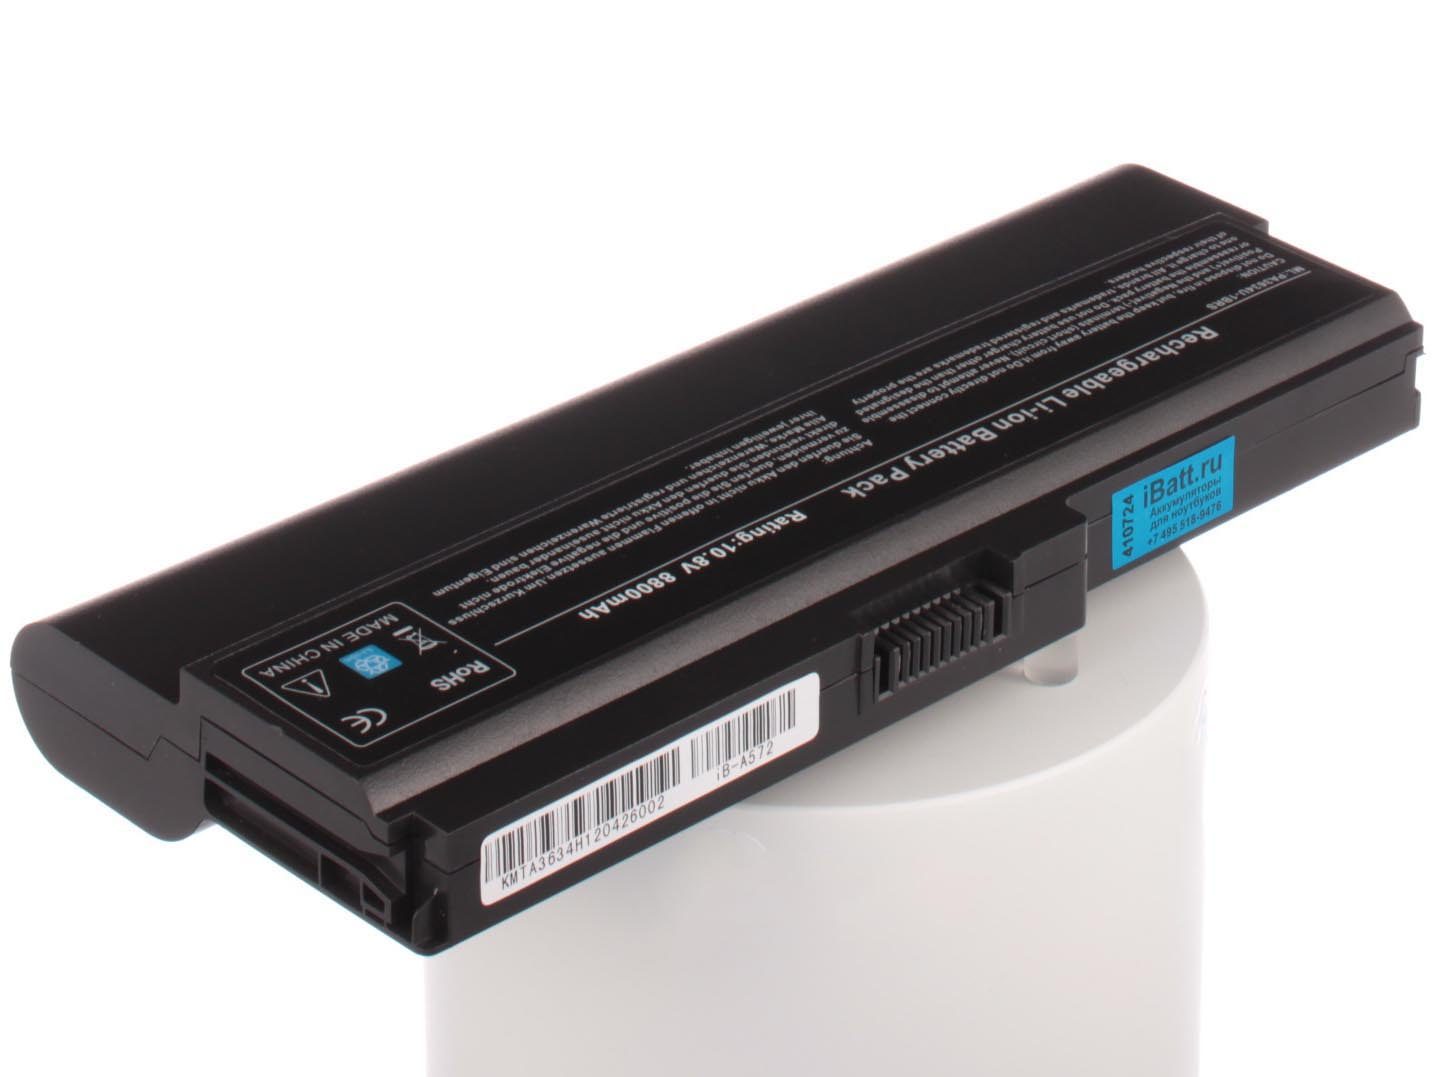 Аккумулятор для ноутбука iBatt для ToshiBa Satellite L670-15P, Satellite U500-1F4, Satellite L755-13R, Satellite L755-A1W, Satellite L755-A3M, Satellite L775-12E, Satellite U500-10M, Satellite PRO L650-1M7, Satellite U400-18E pa3479 replacement high capacity laptop battery of 10 8v 5200mah for toshiba pa3479u pa3479u1bas satellite p100 p105 6cell black